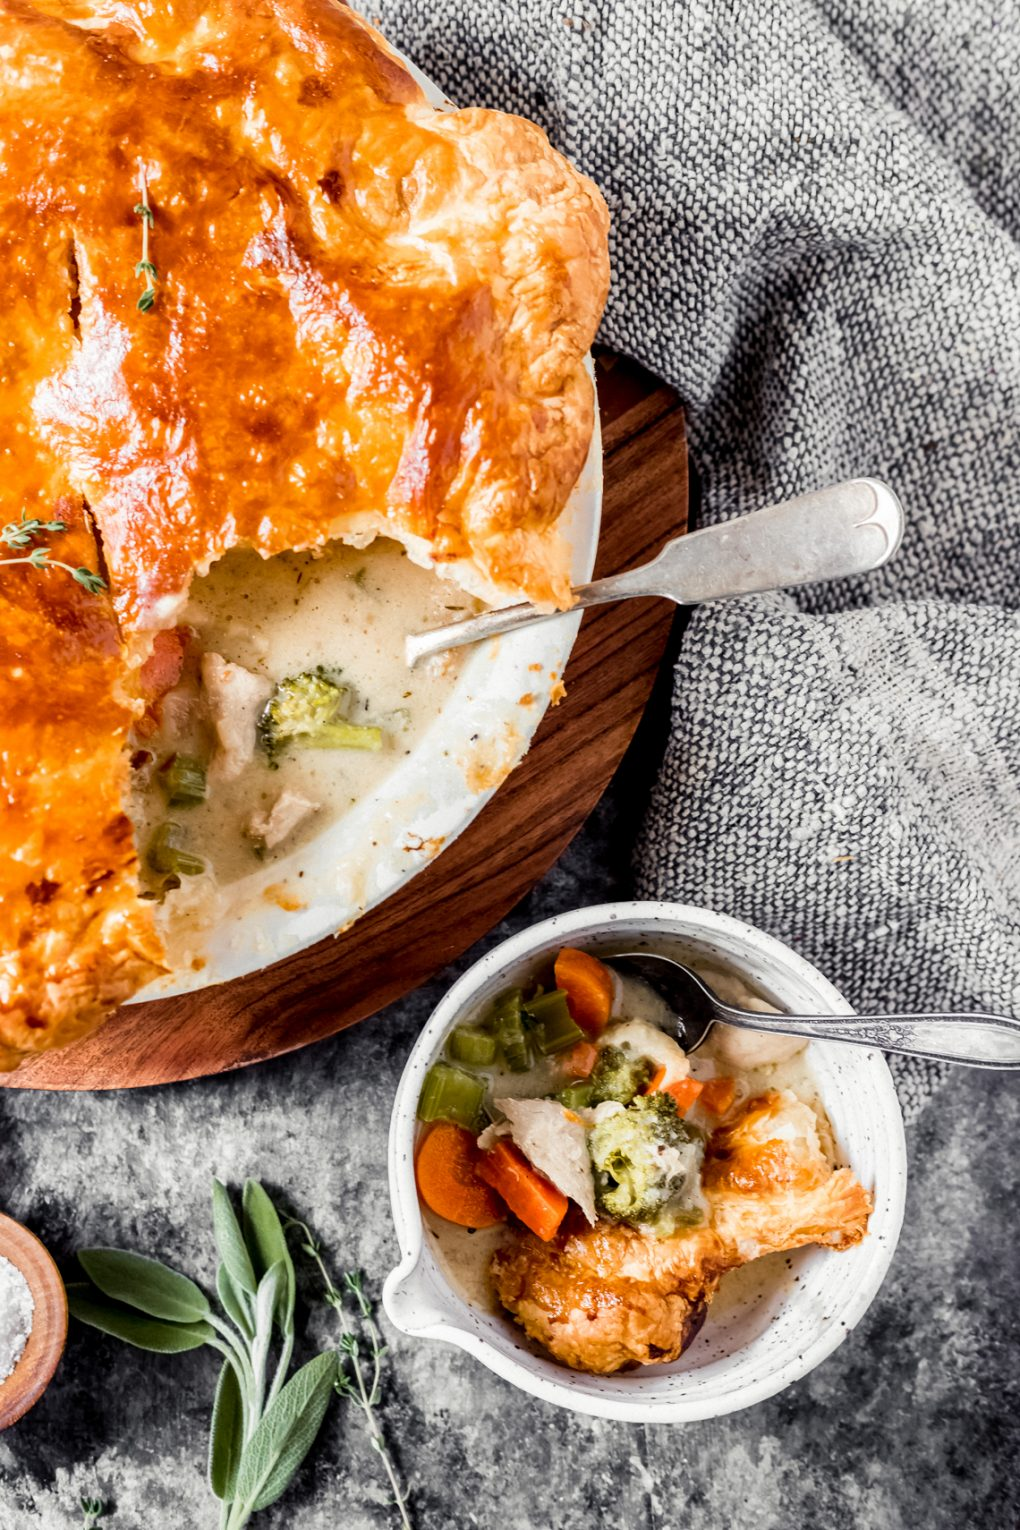 a pheasant pot pie with one serving scooped out and served in a small bowl